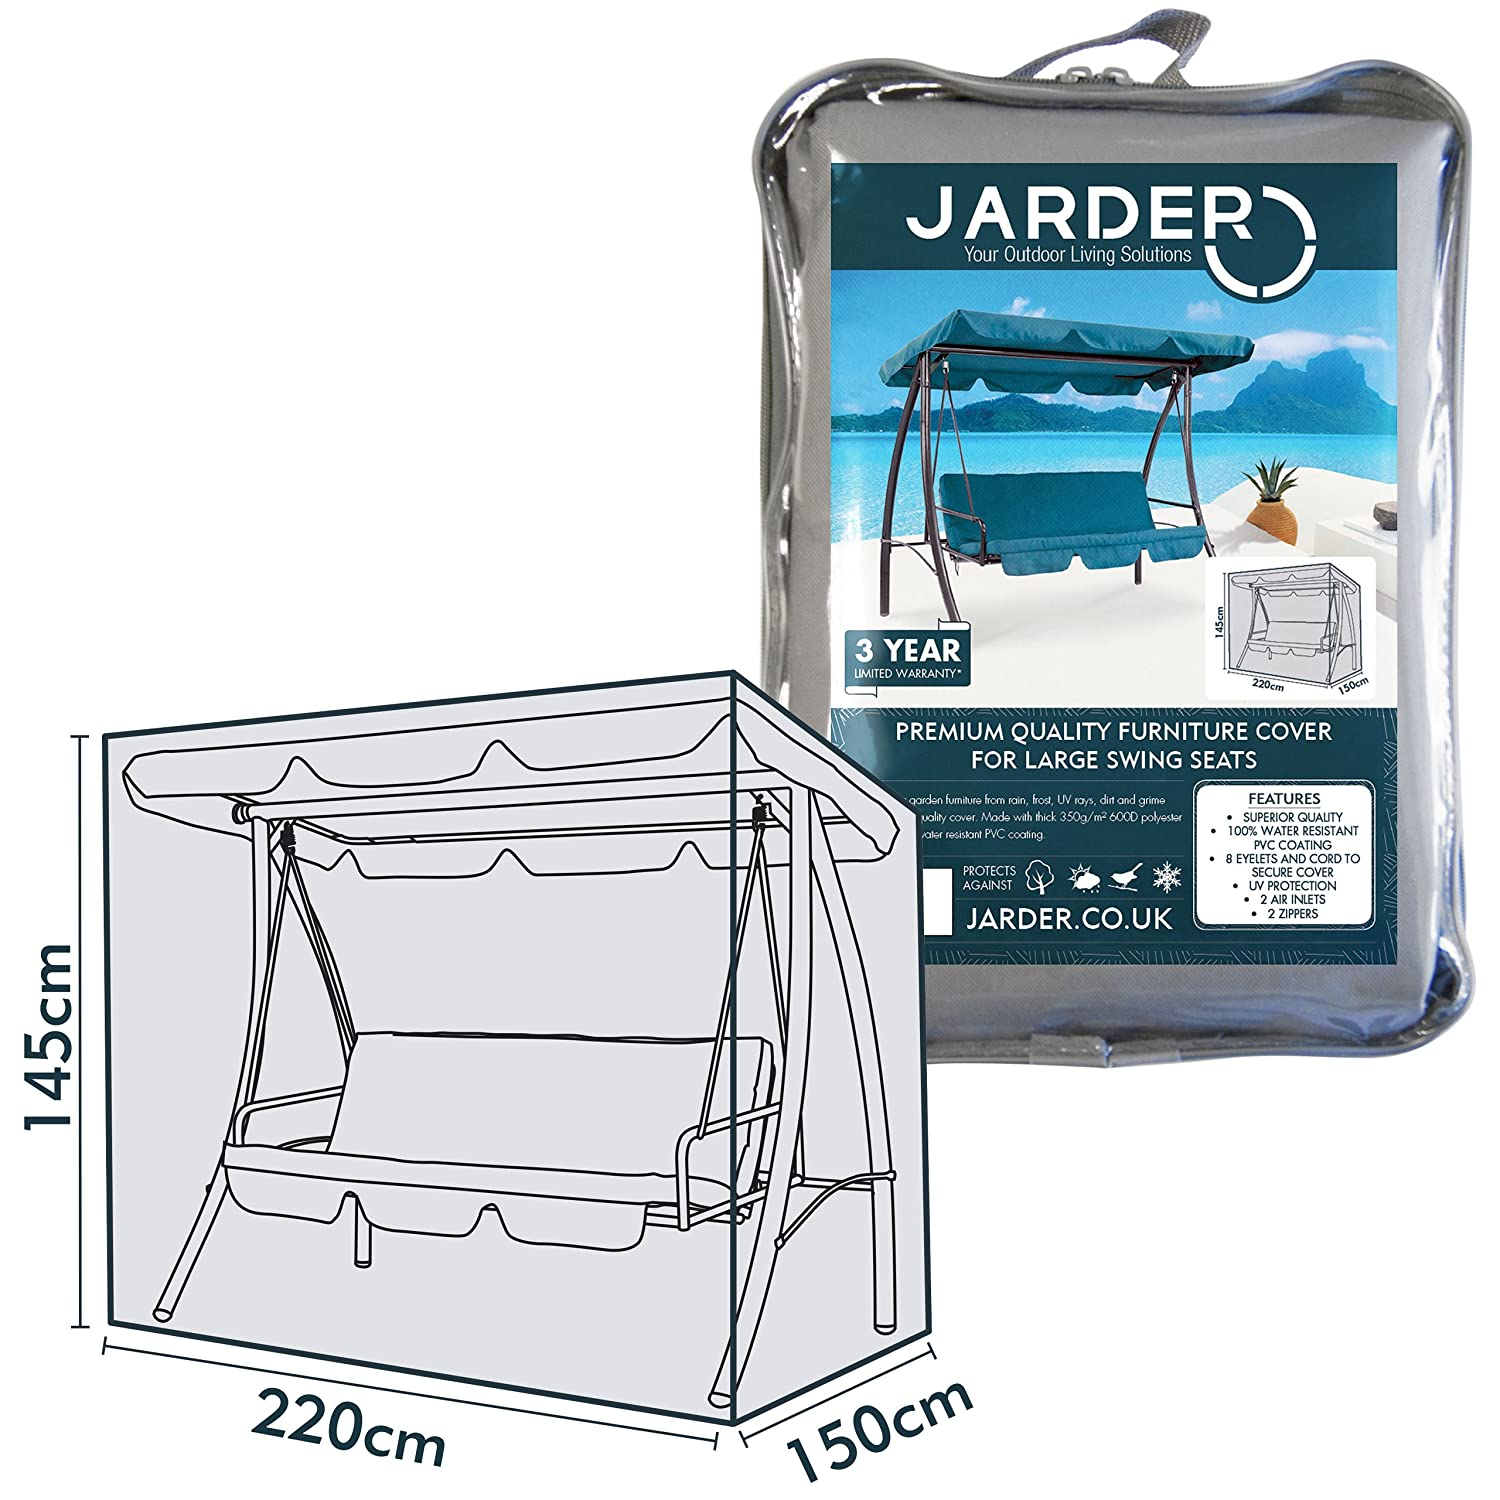 Jarder Swing Chair Cover, 100% Water Resistant | 3 YEAR WARRANTY